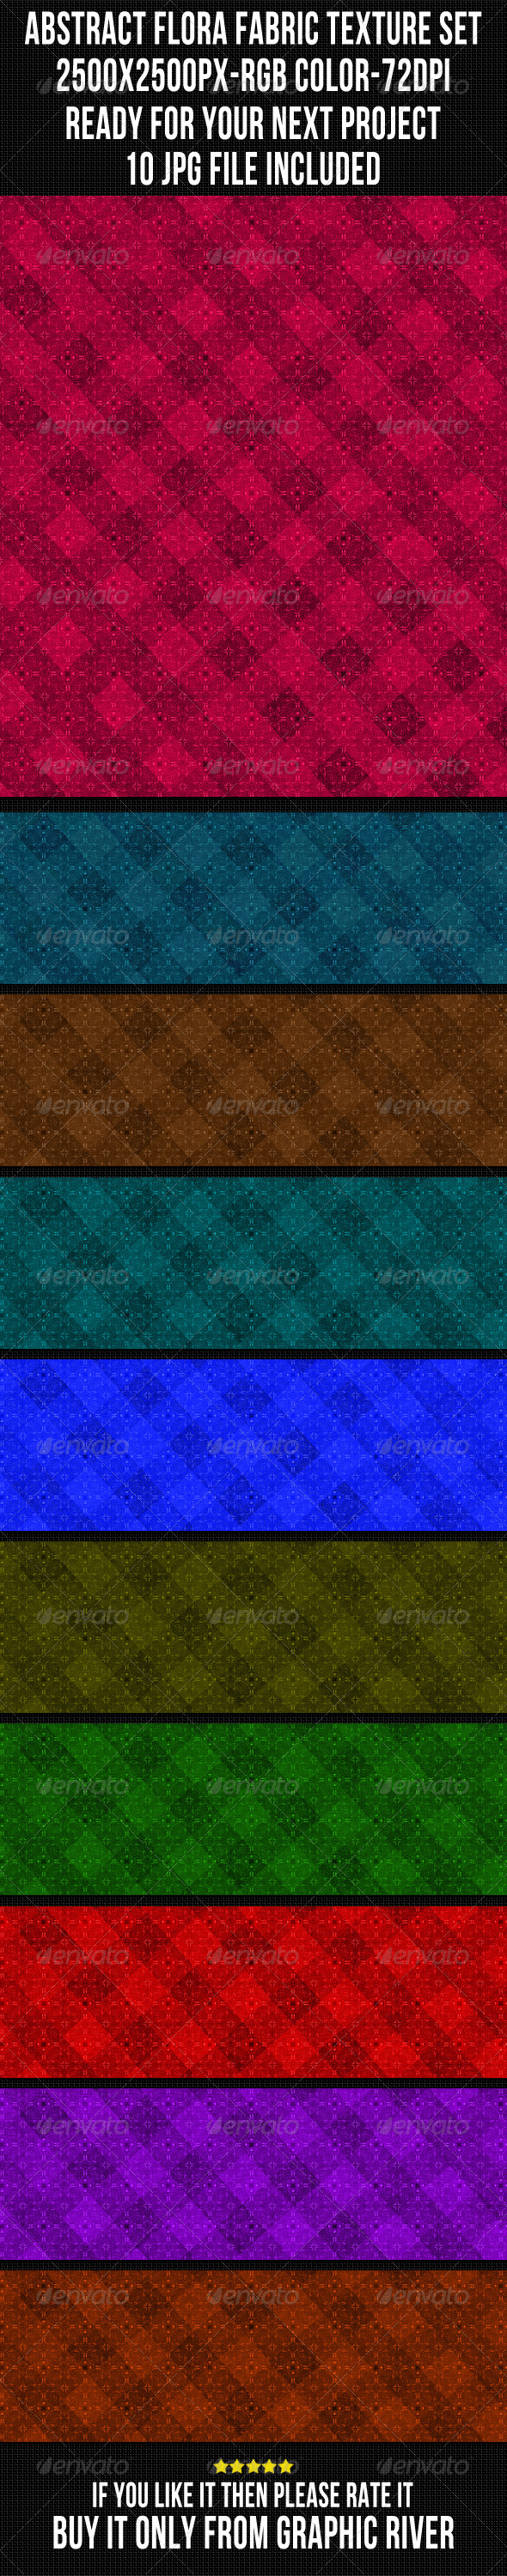 Abstract Fabric Background Set 11 - Patterns Backgrounds